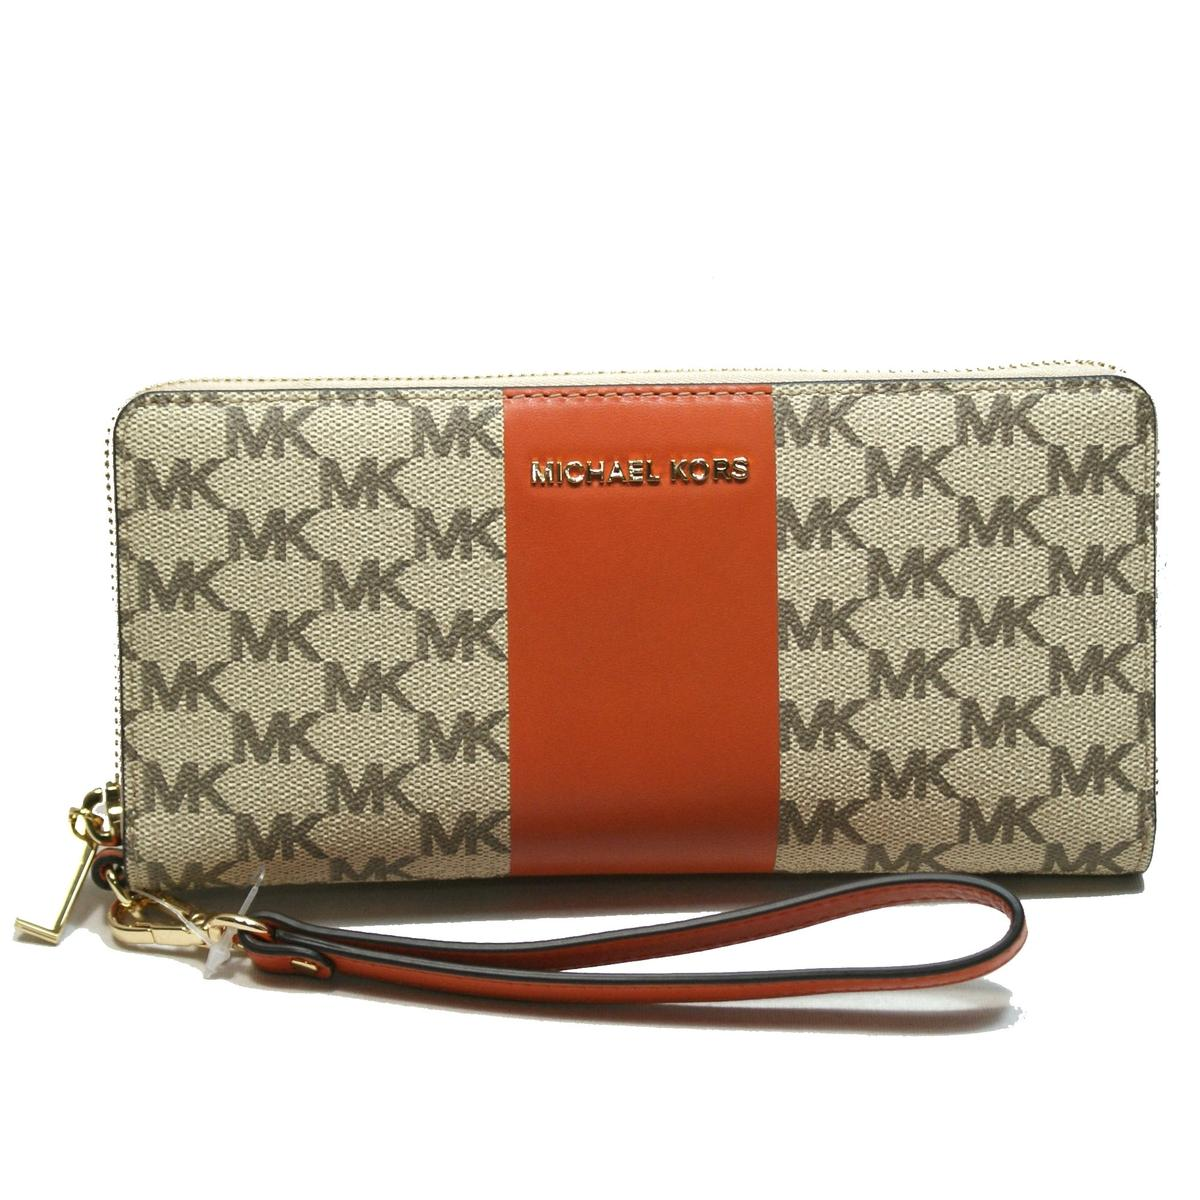 44f38b3b4ae1 Home · Michael Kors · Jet Set Travel Center Stripe Continental Zip Around  Wallet/Wristlet Natural/ Orange. CLICK THUMBNAIL TO ZOOM. Found ...